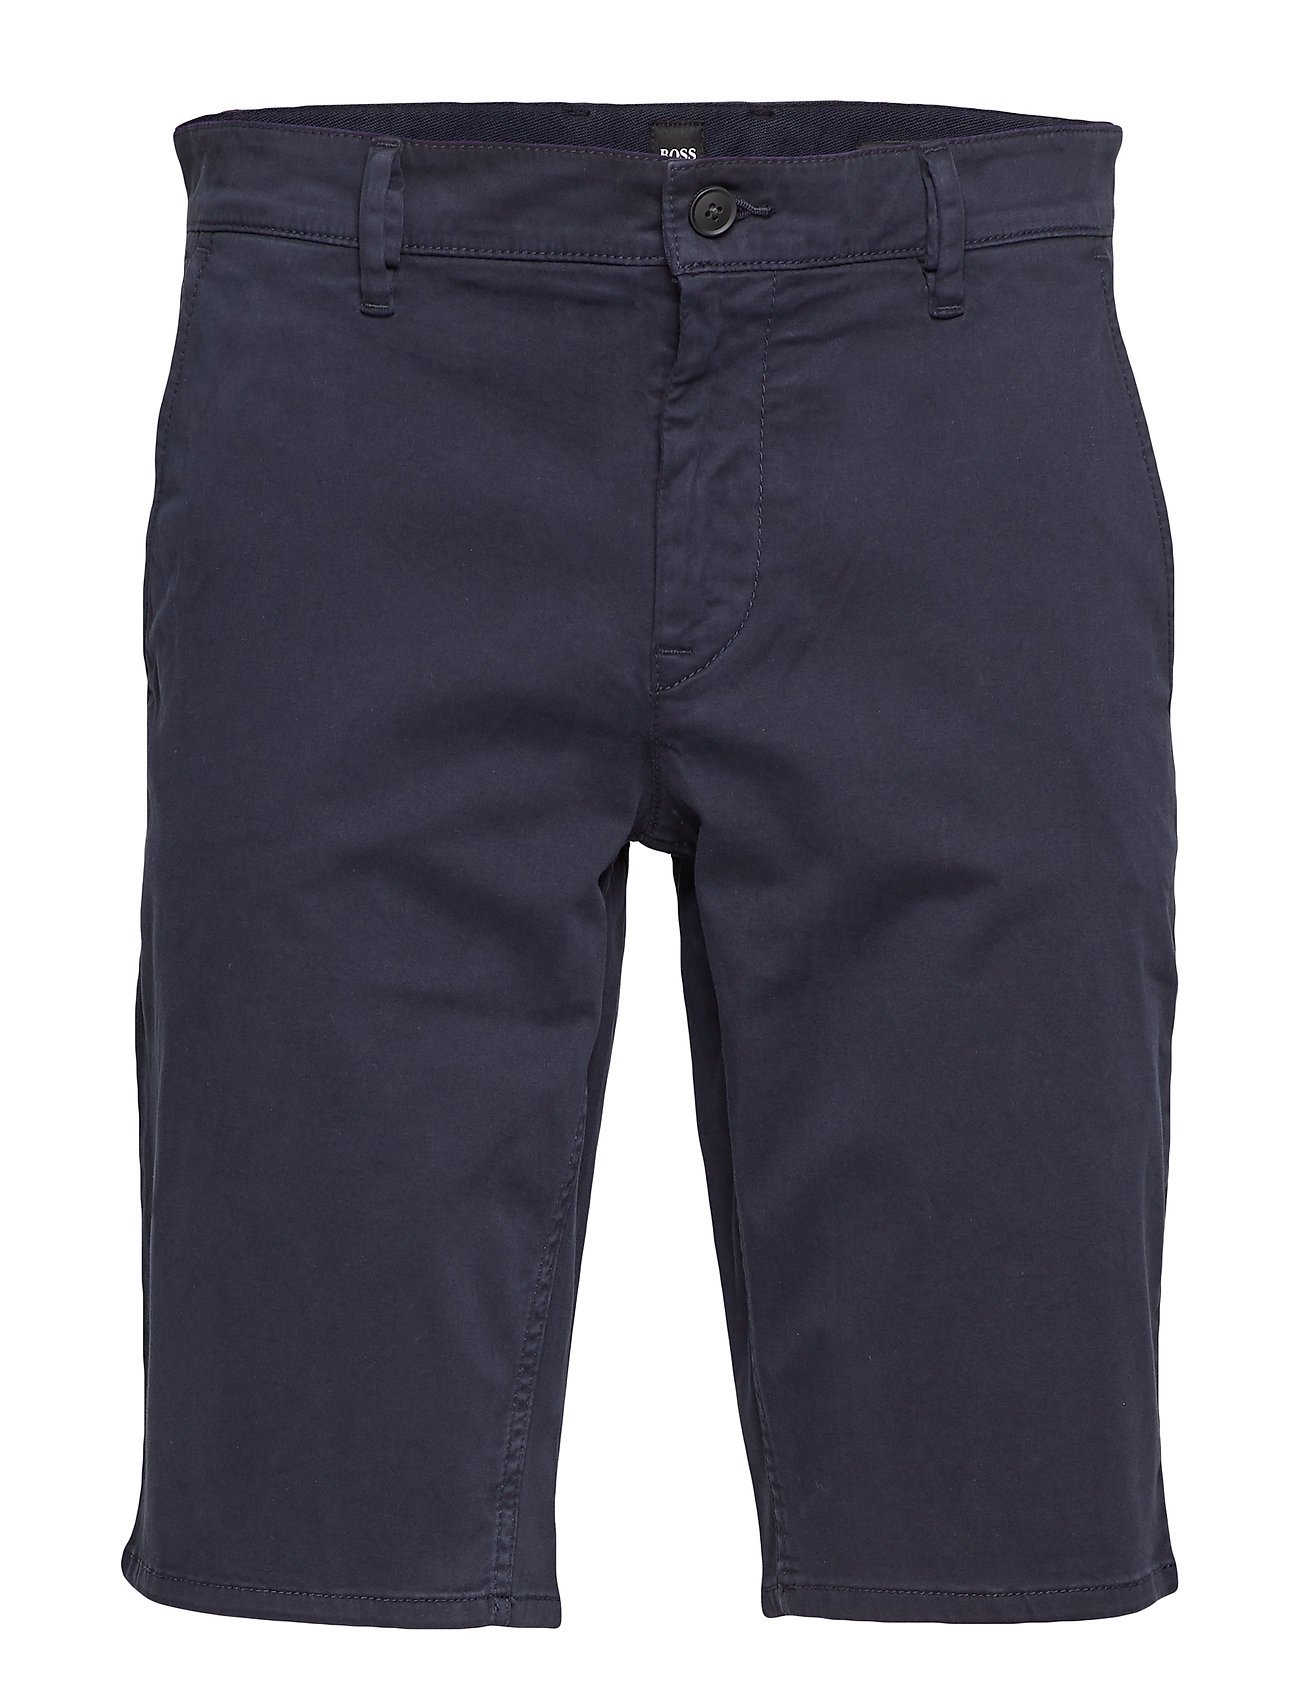 18bc8c2f Boss Casual Wear Schino-slim Shorts (Dark Blue), (62.97 €) | Large ...